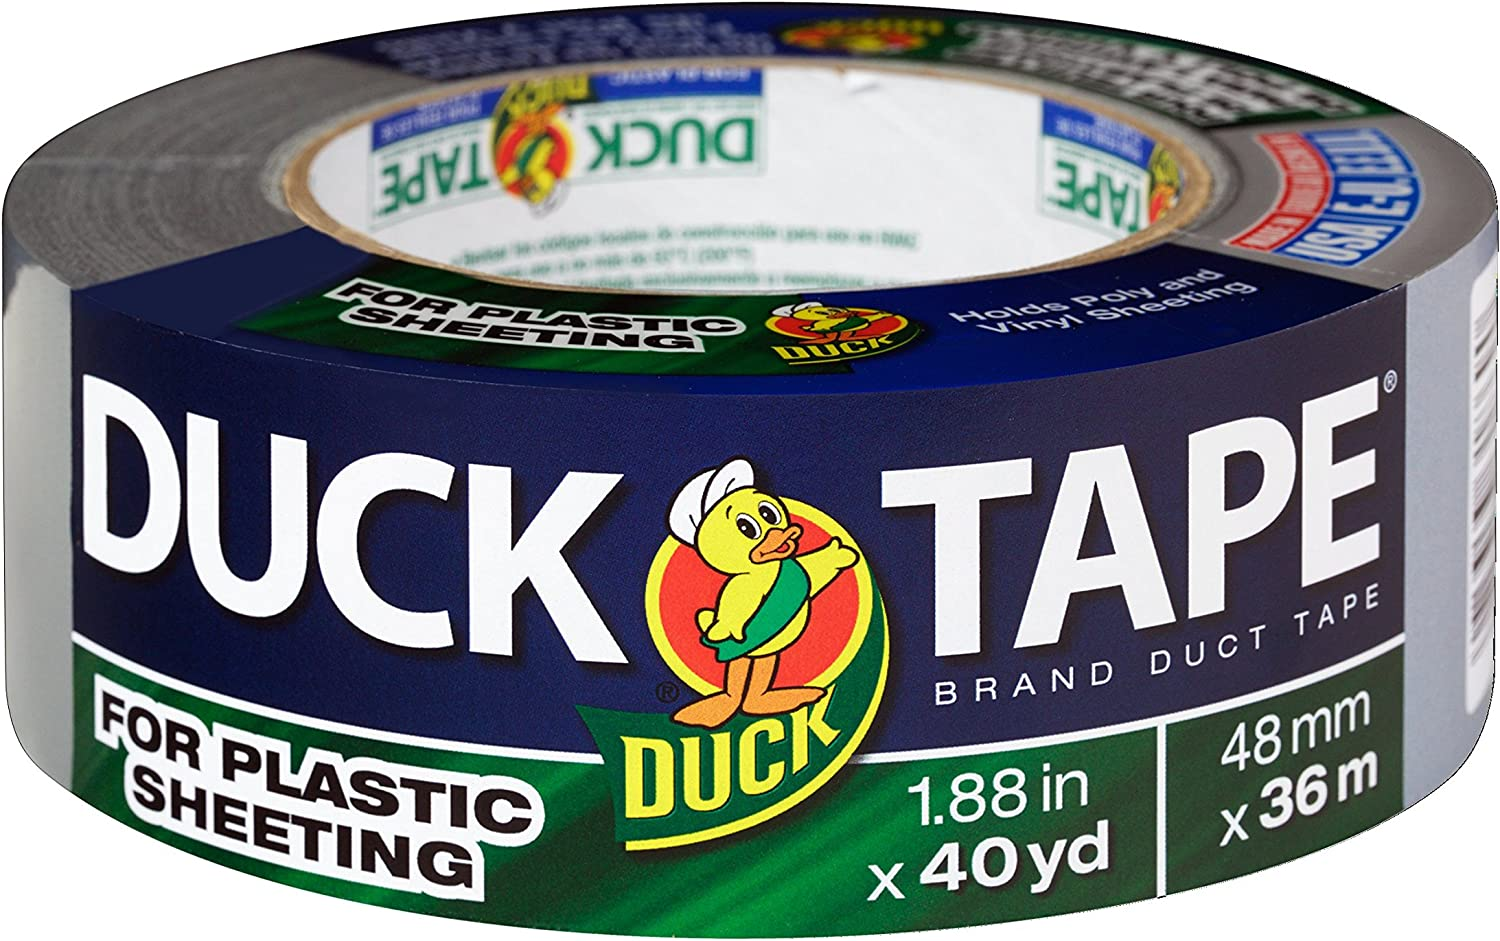 Duck Brand 241026 Duct Tape for Plastic Sheeting, Silver, 1.88 Inches x 40 Yards, Single Roll